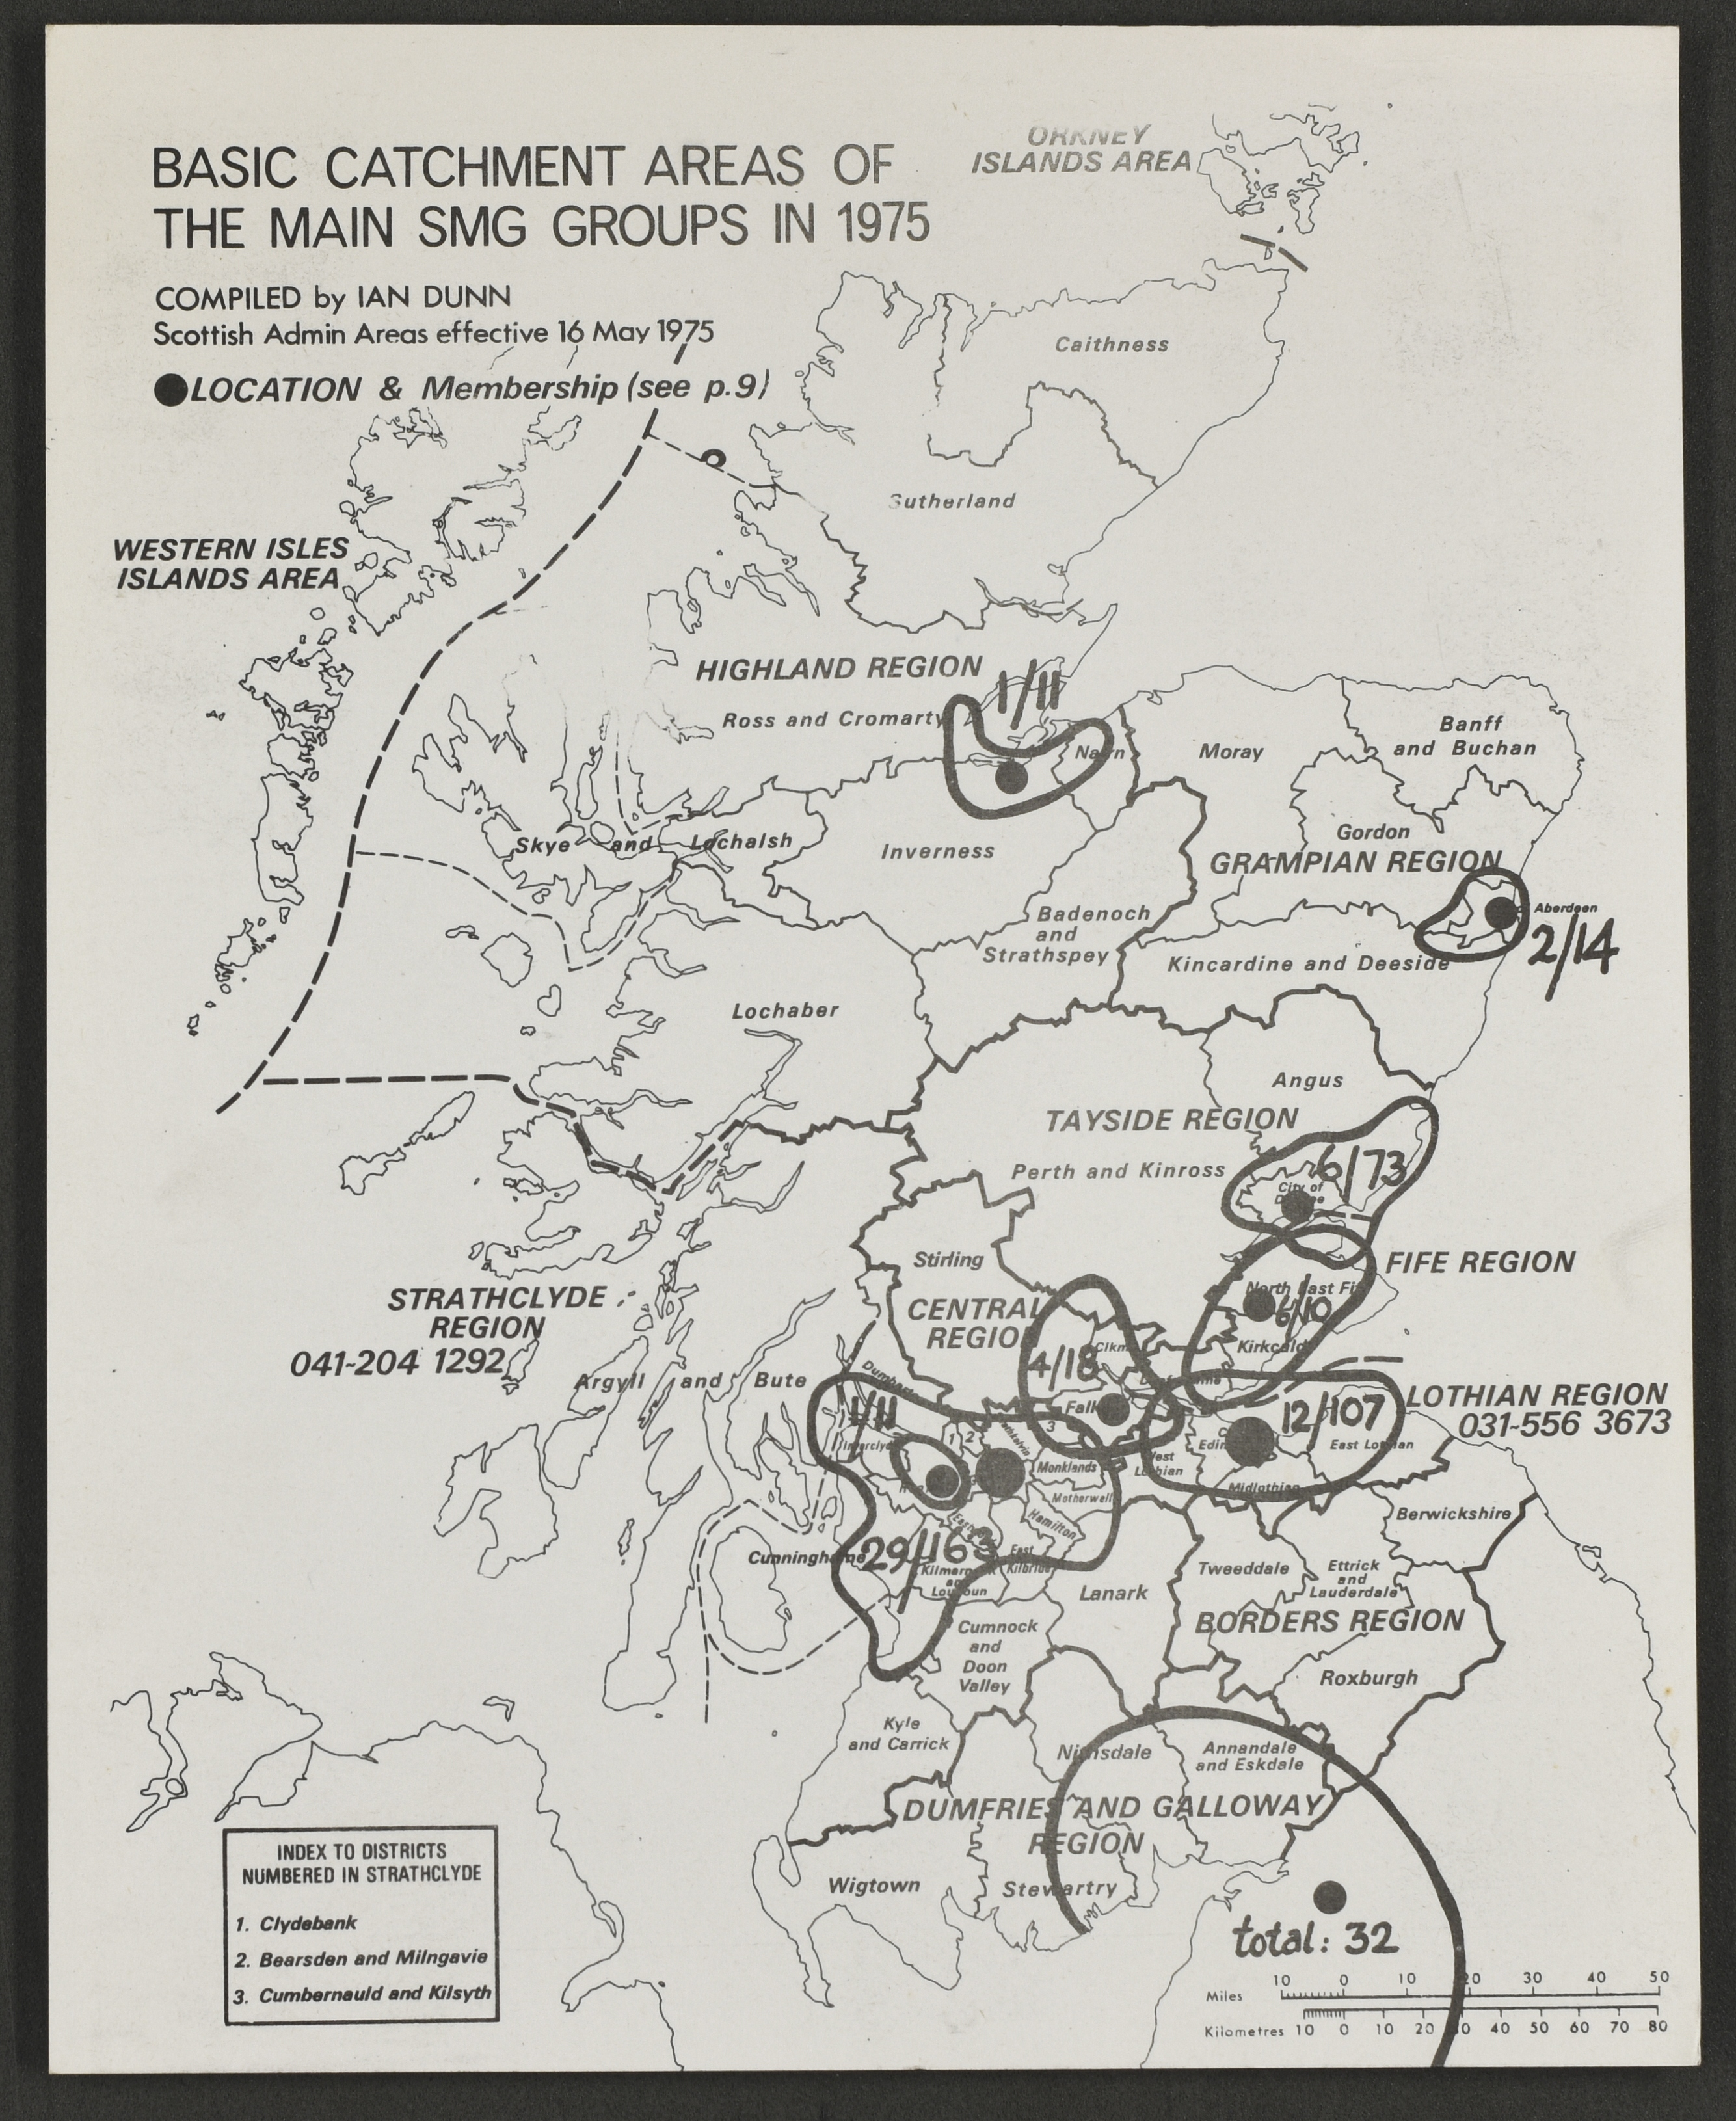 Catchment areas of the main SMG groups in 1975